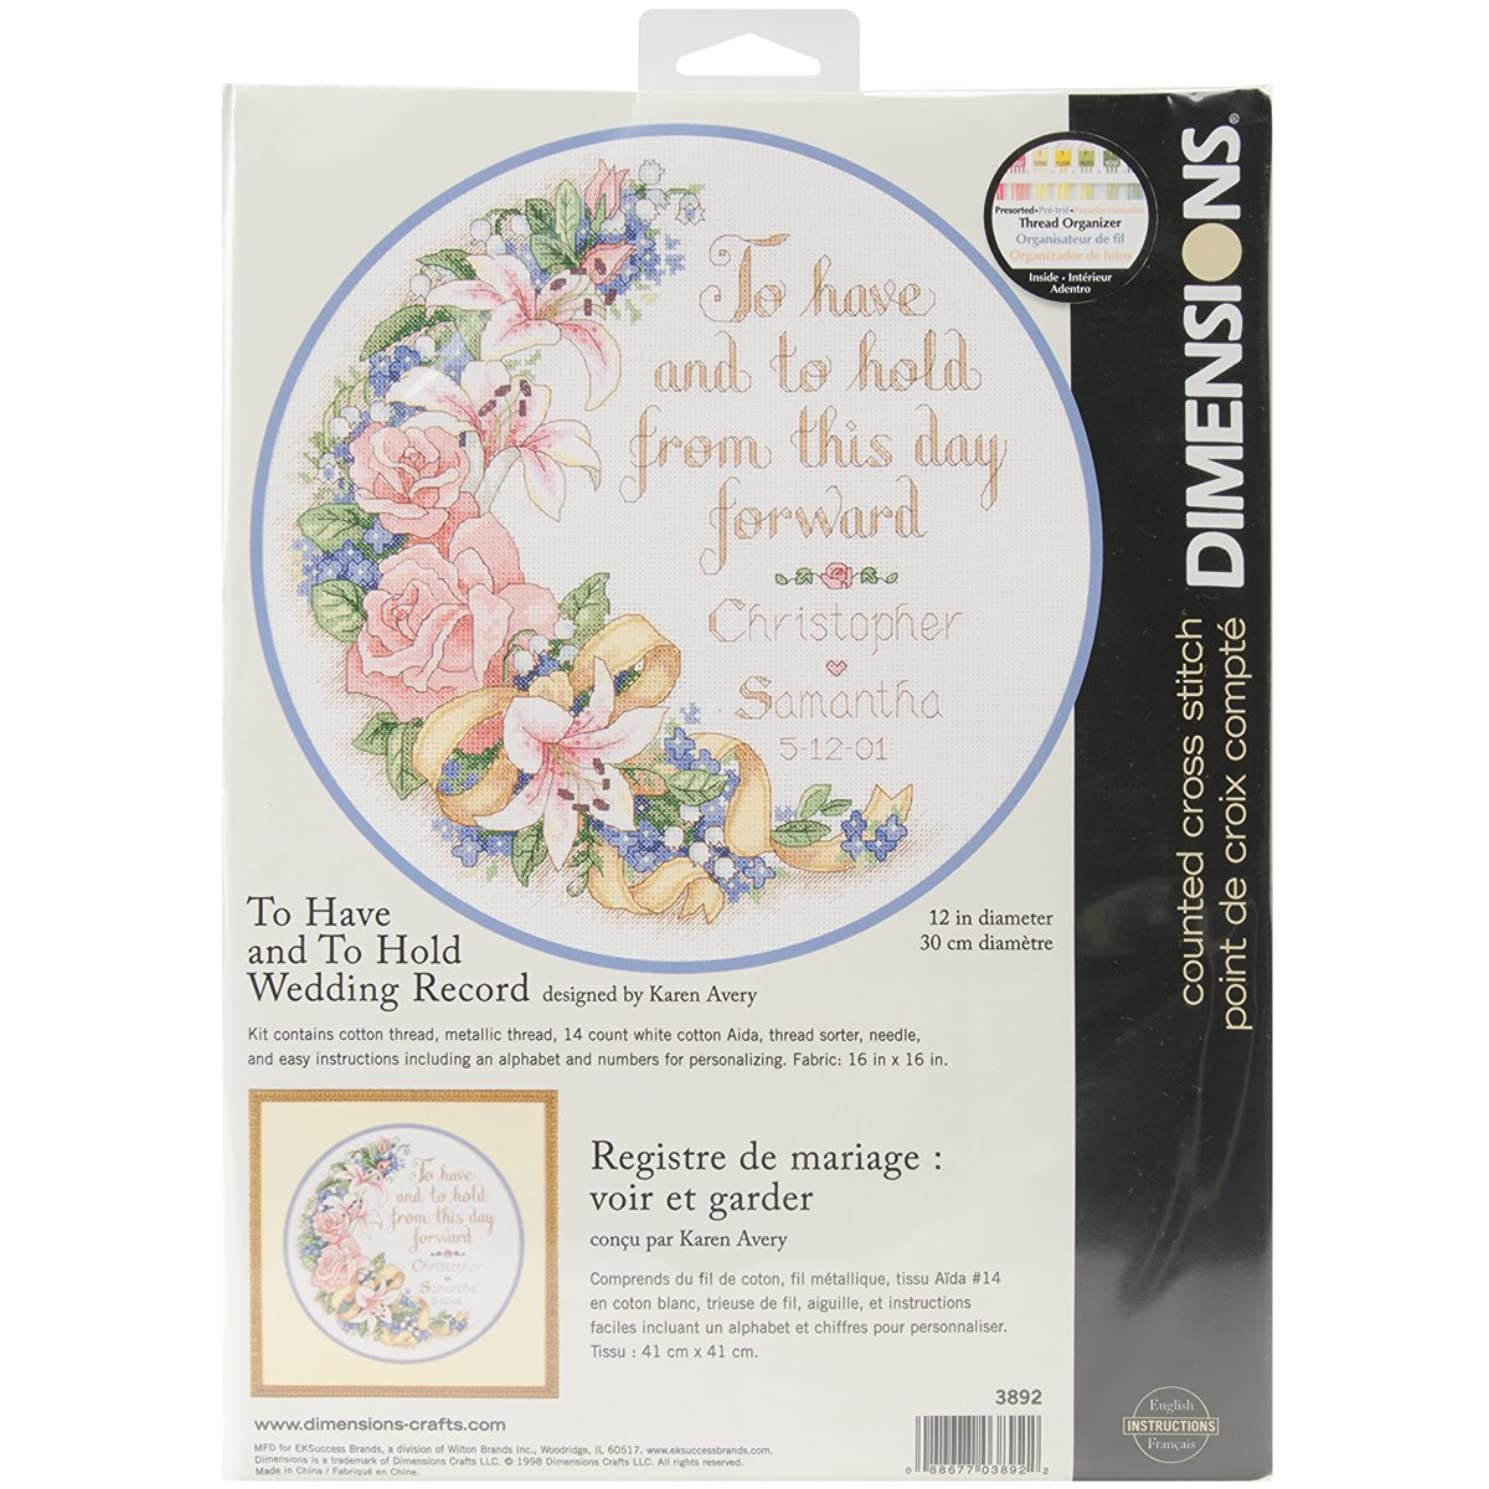 Dimensions To Have & To Hold Wedding Record Counted Cross Stitch Kit: 12